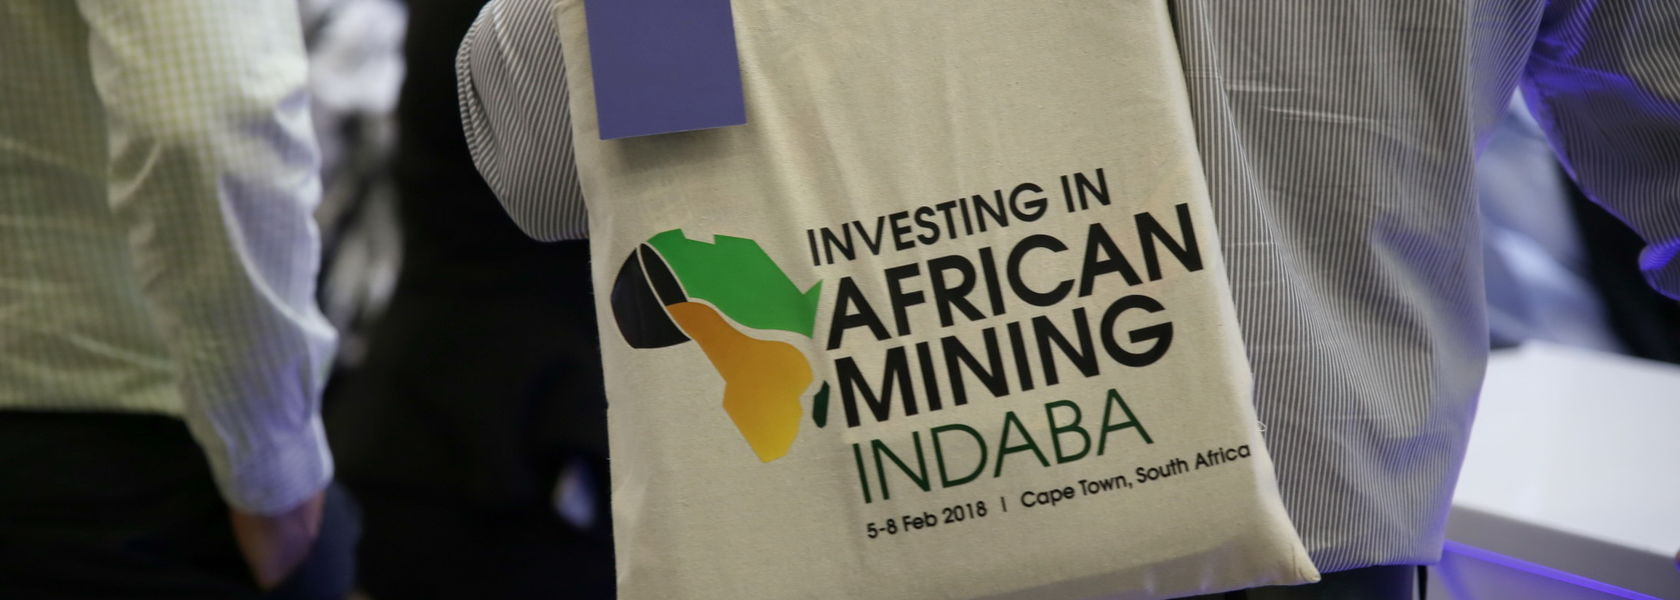 Mining sector to converge on Cape Town - MiningNews net